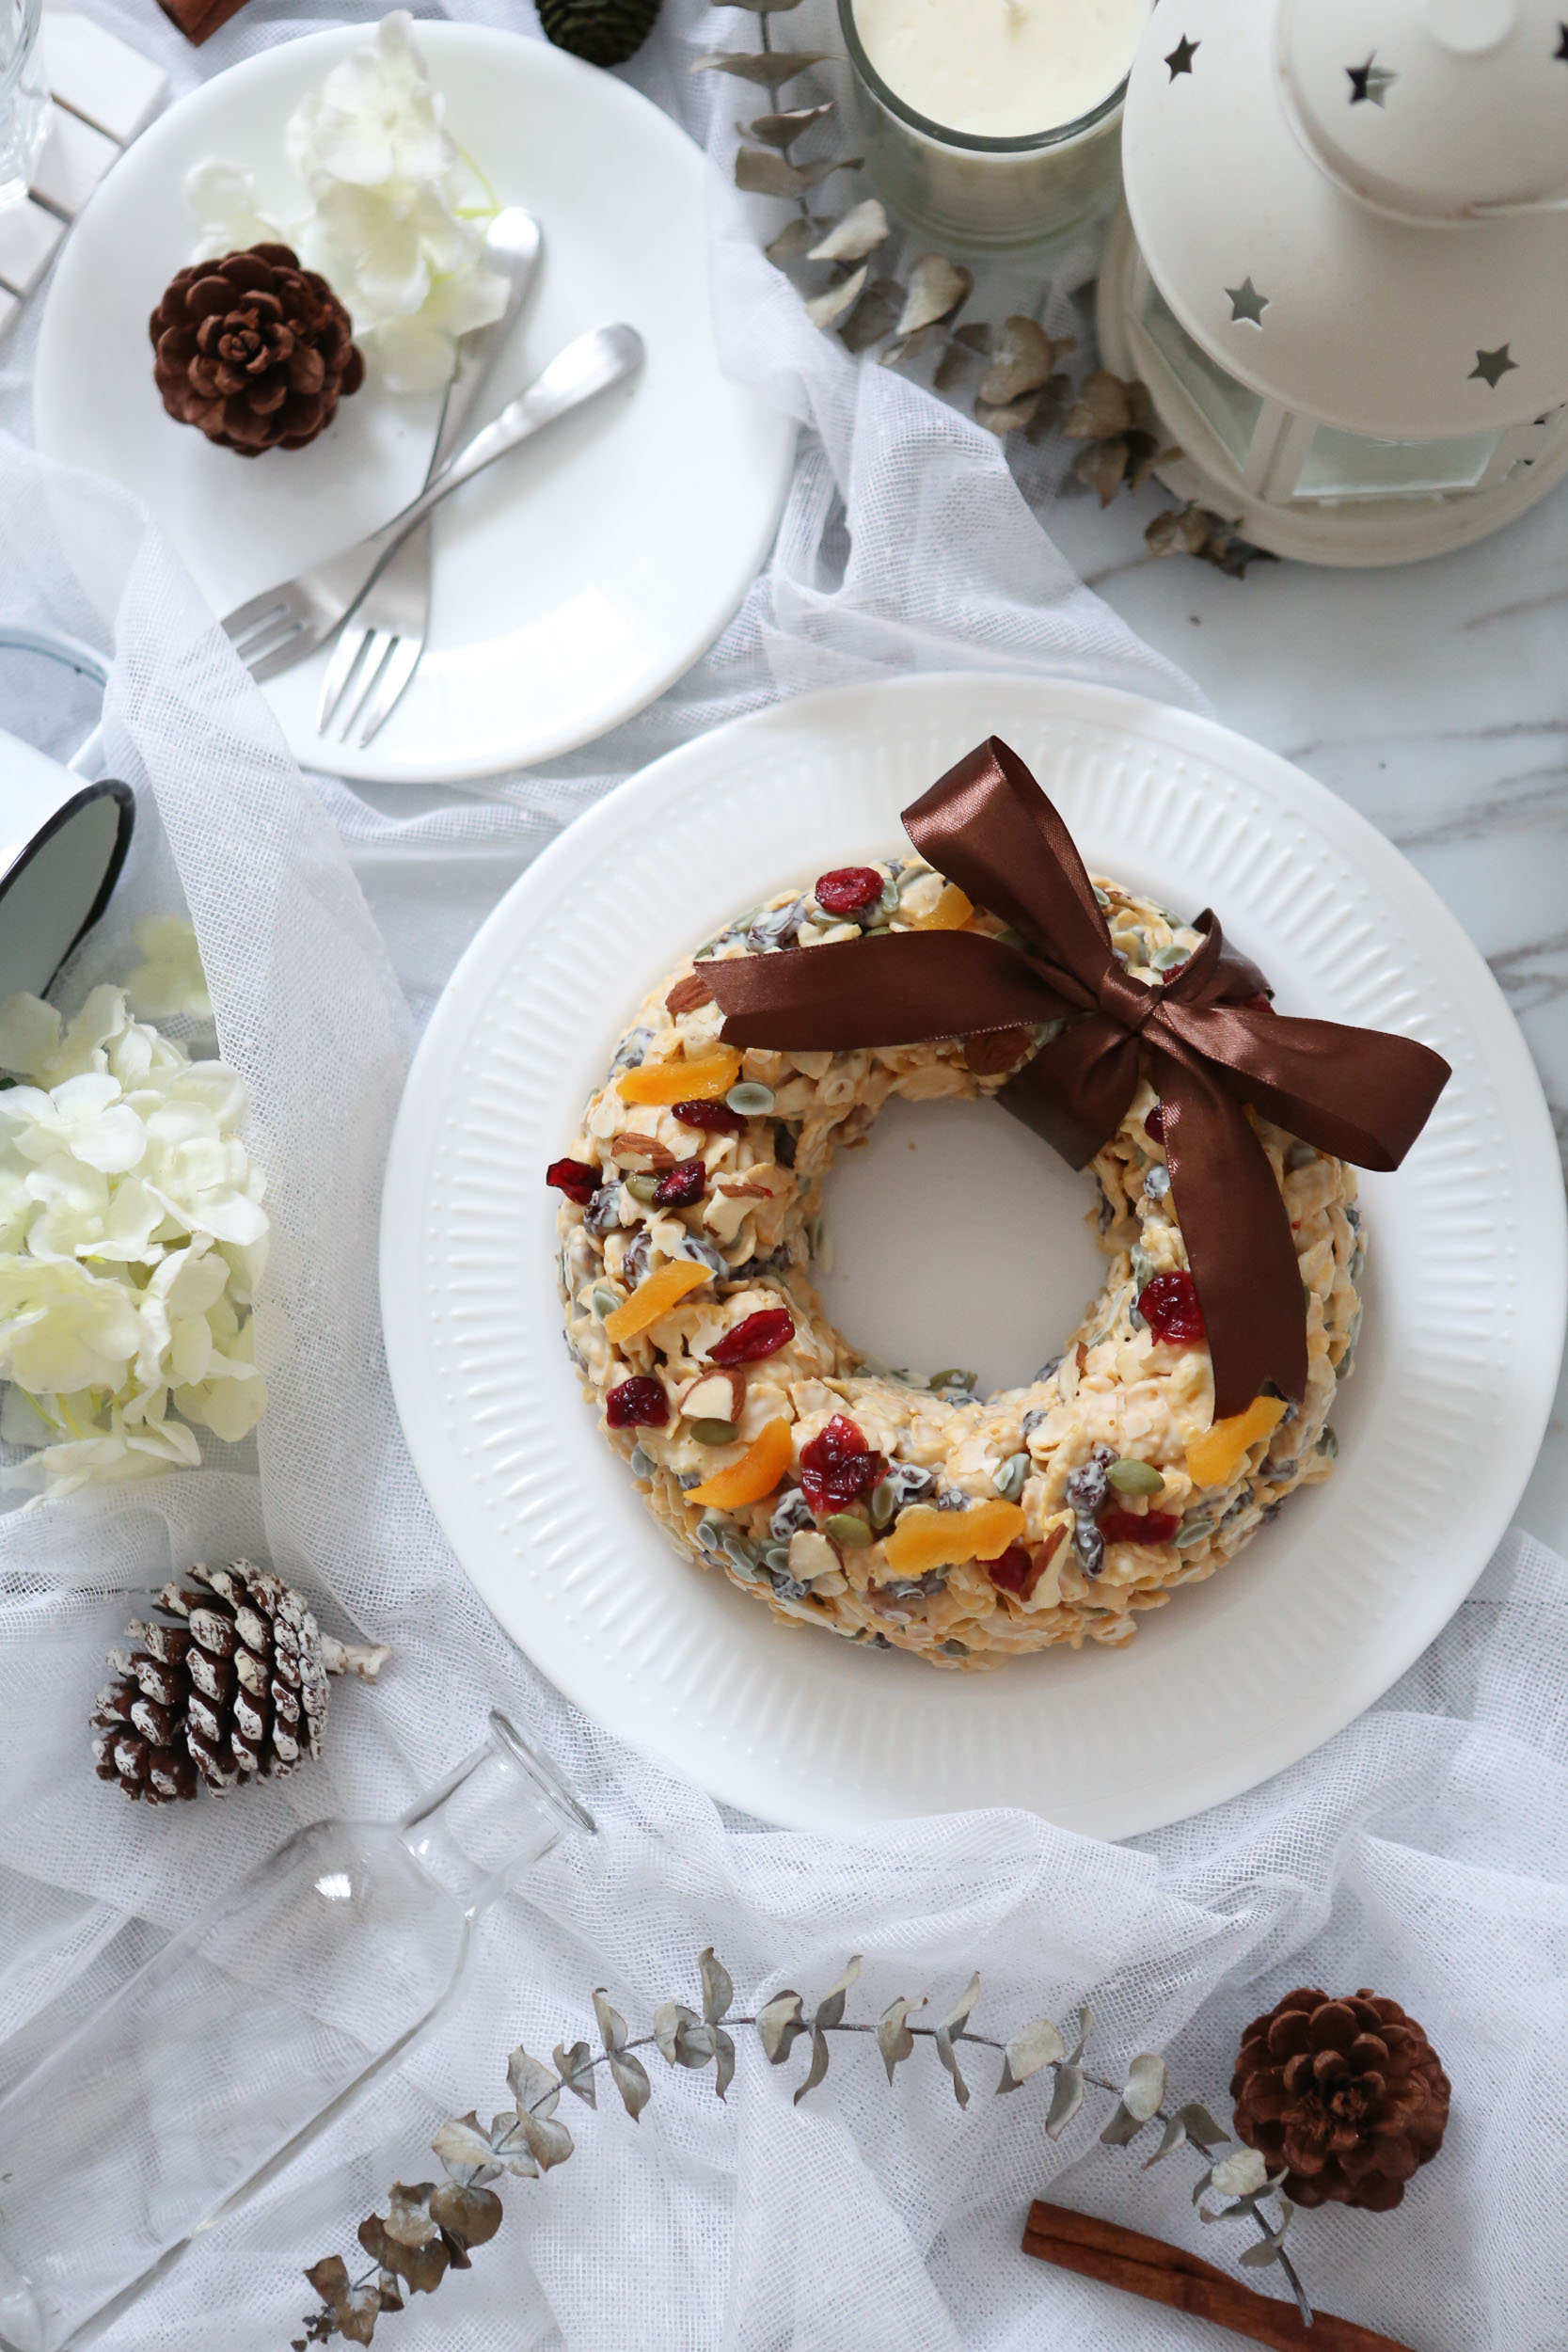 White Chocolate Cornflakes Wreath - $34White chocolate, Cornflakes, assortment of dried cranberries, apricot, sultanas and lightly toasted slivered almonds and pumpkin seeds